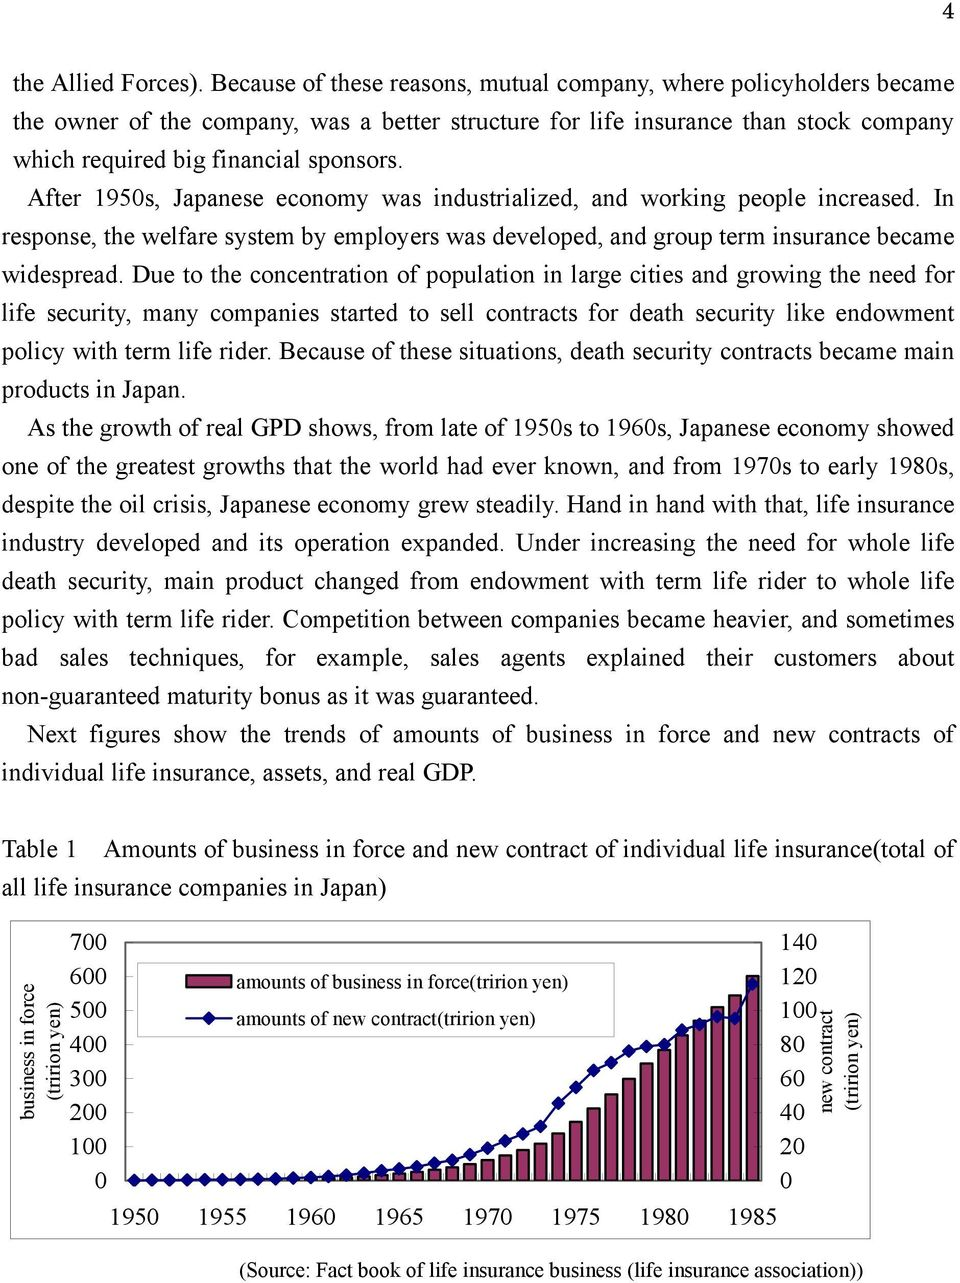 After 195s, Japanese economy was industrialized, and working people increased. In response, the welfare system by employers was developed, and group term insurance became widespread.